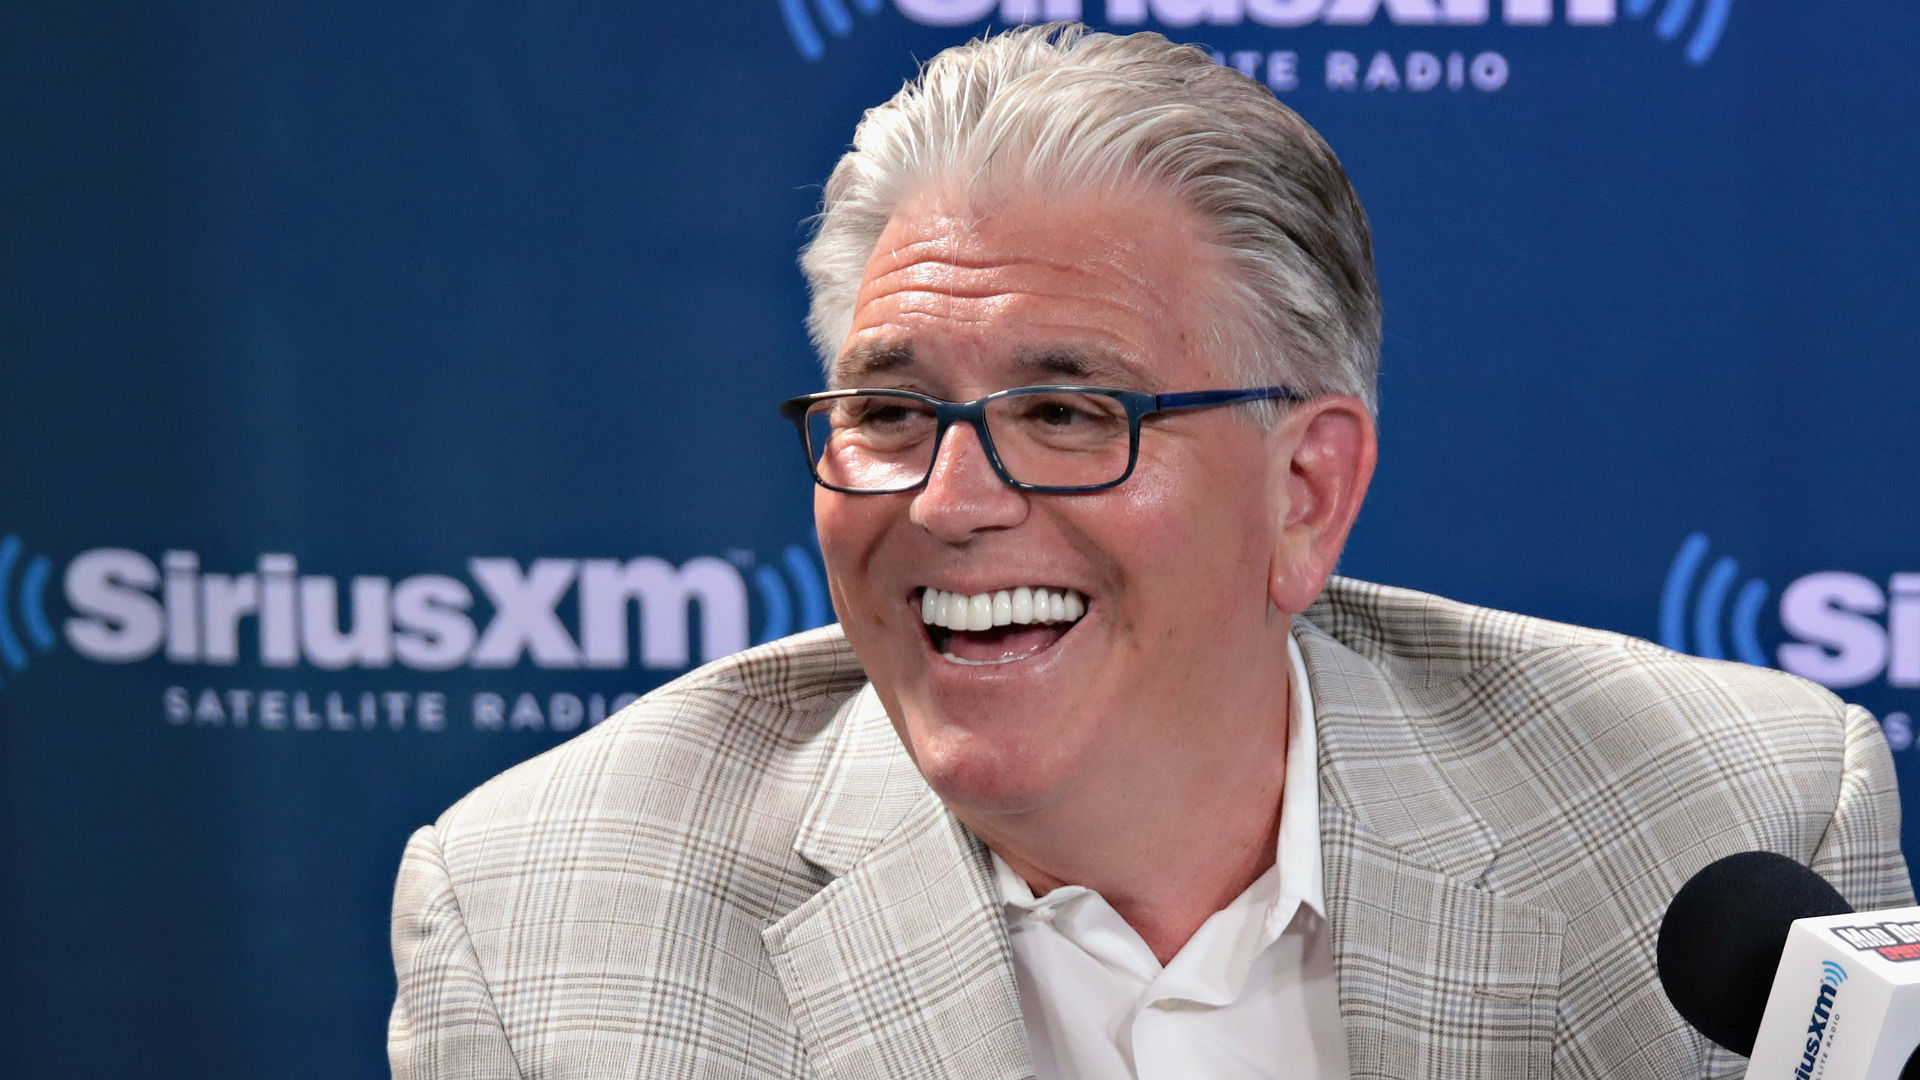 Mike Francesa Returning to WFAN